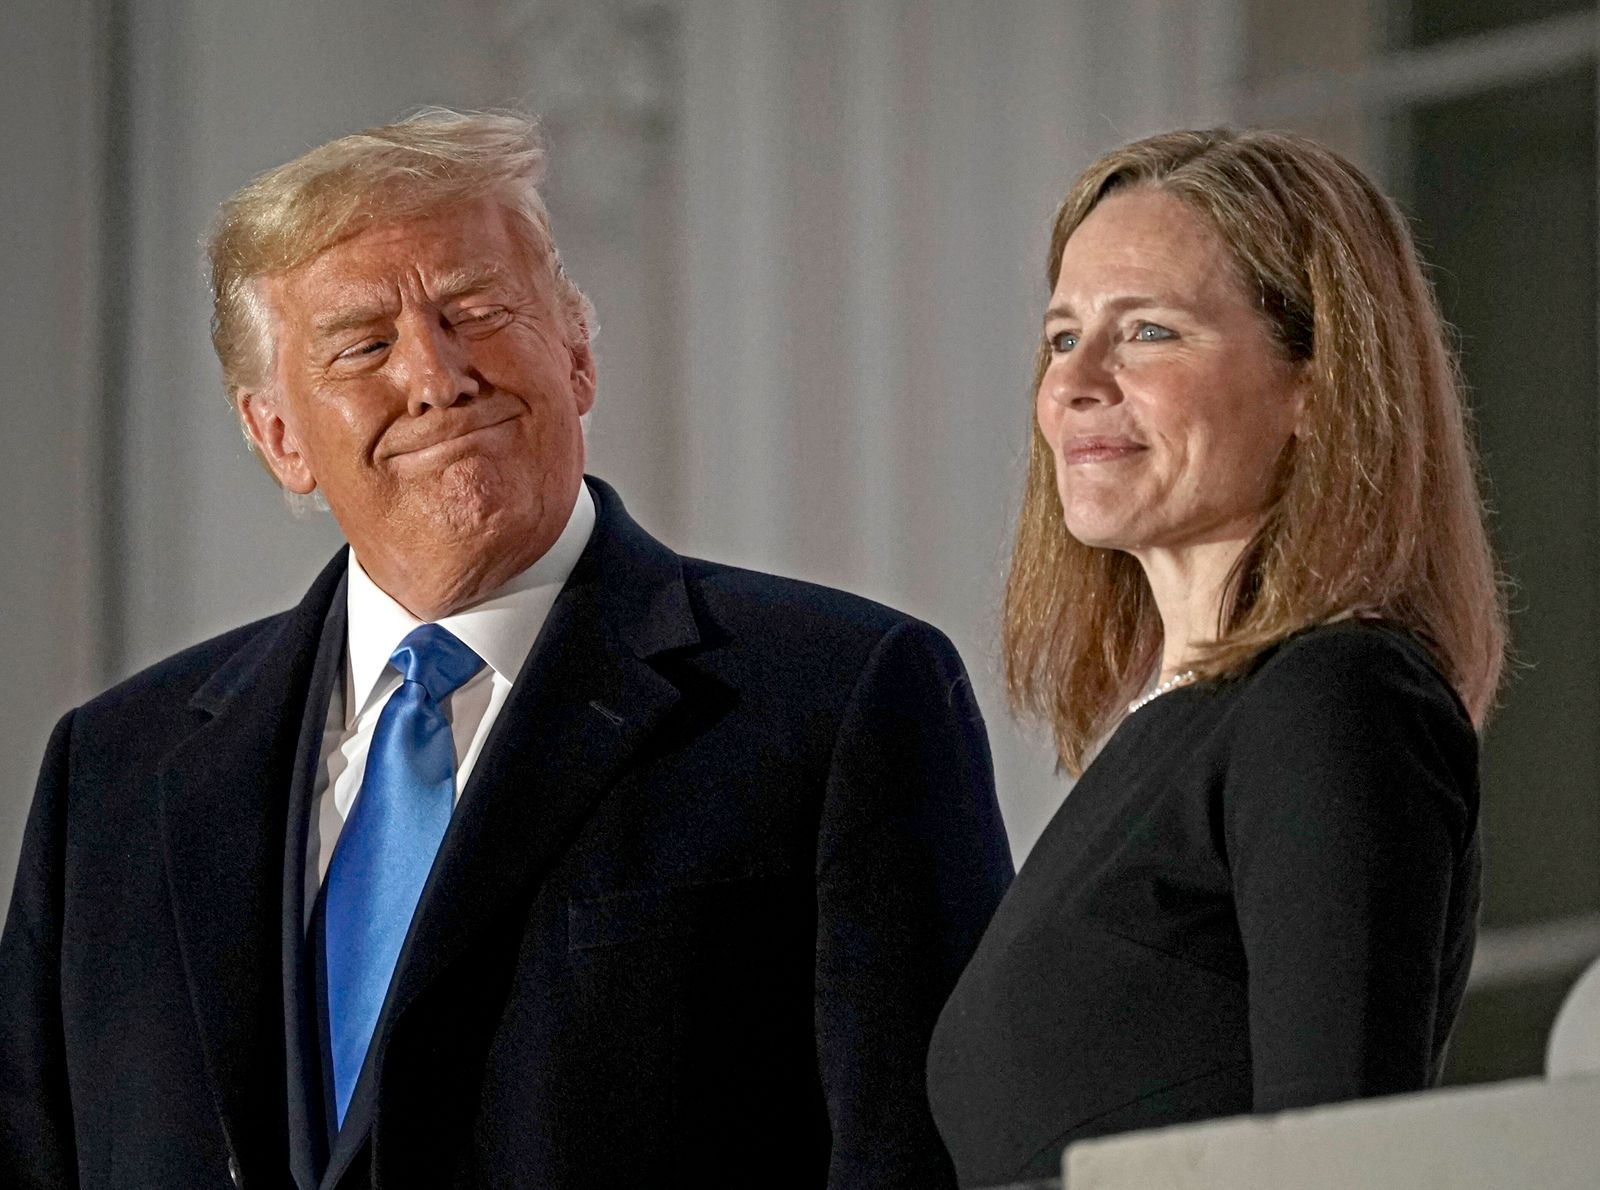 News Bilder des Tages United States President Donald J. Trump and Justice Amy Coney Barrett pose for a photo on the Blue